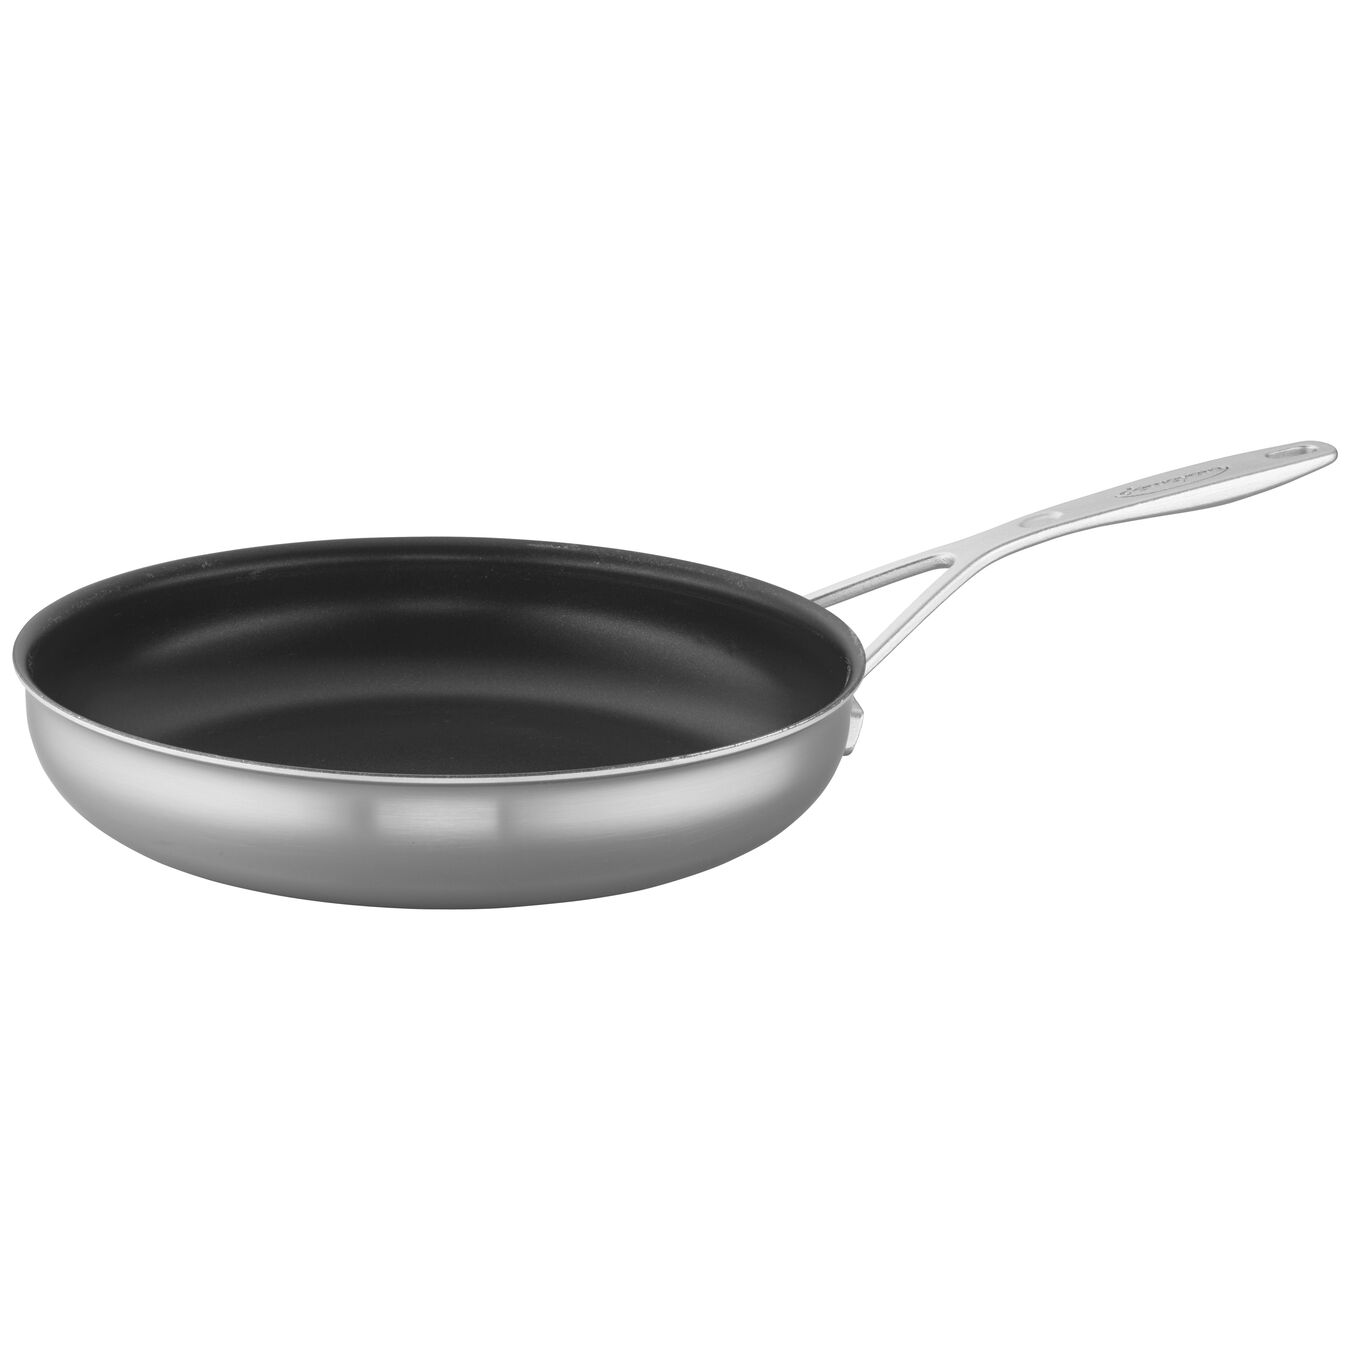 11-inch Stainless Steel Traditional Nonstick Fry Pan,,large 3